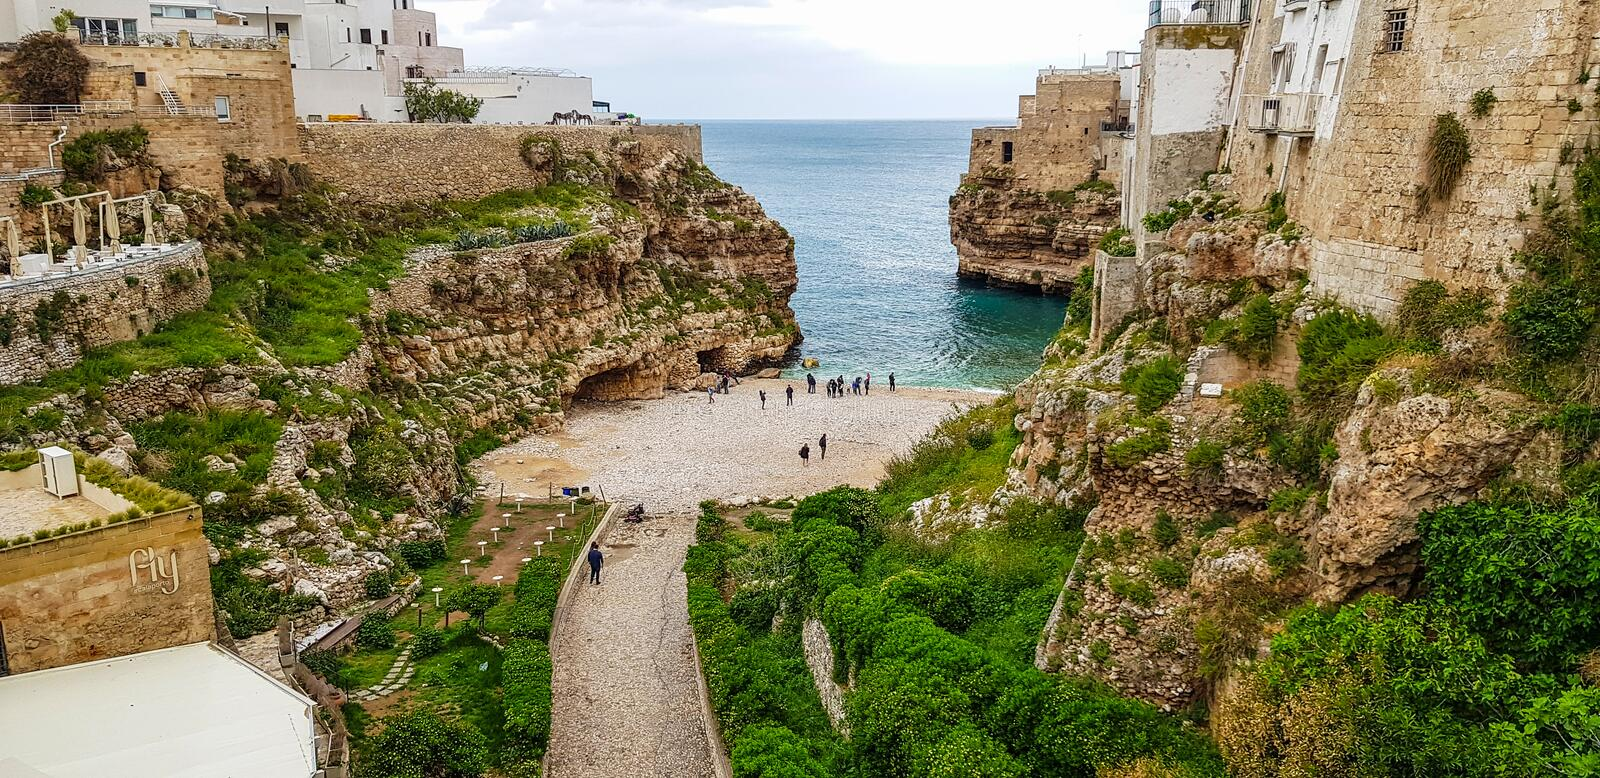 Panoramic view of of Polignano a Mare beach,  town on the rocks, Italian town of the metropolitan city of Bari in Puglia region,. Italy stock photography